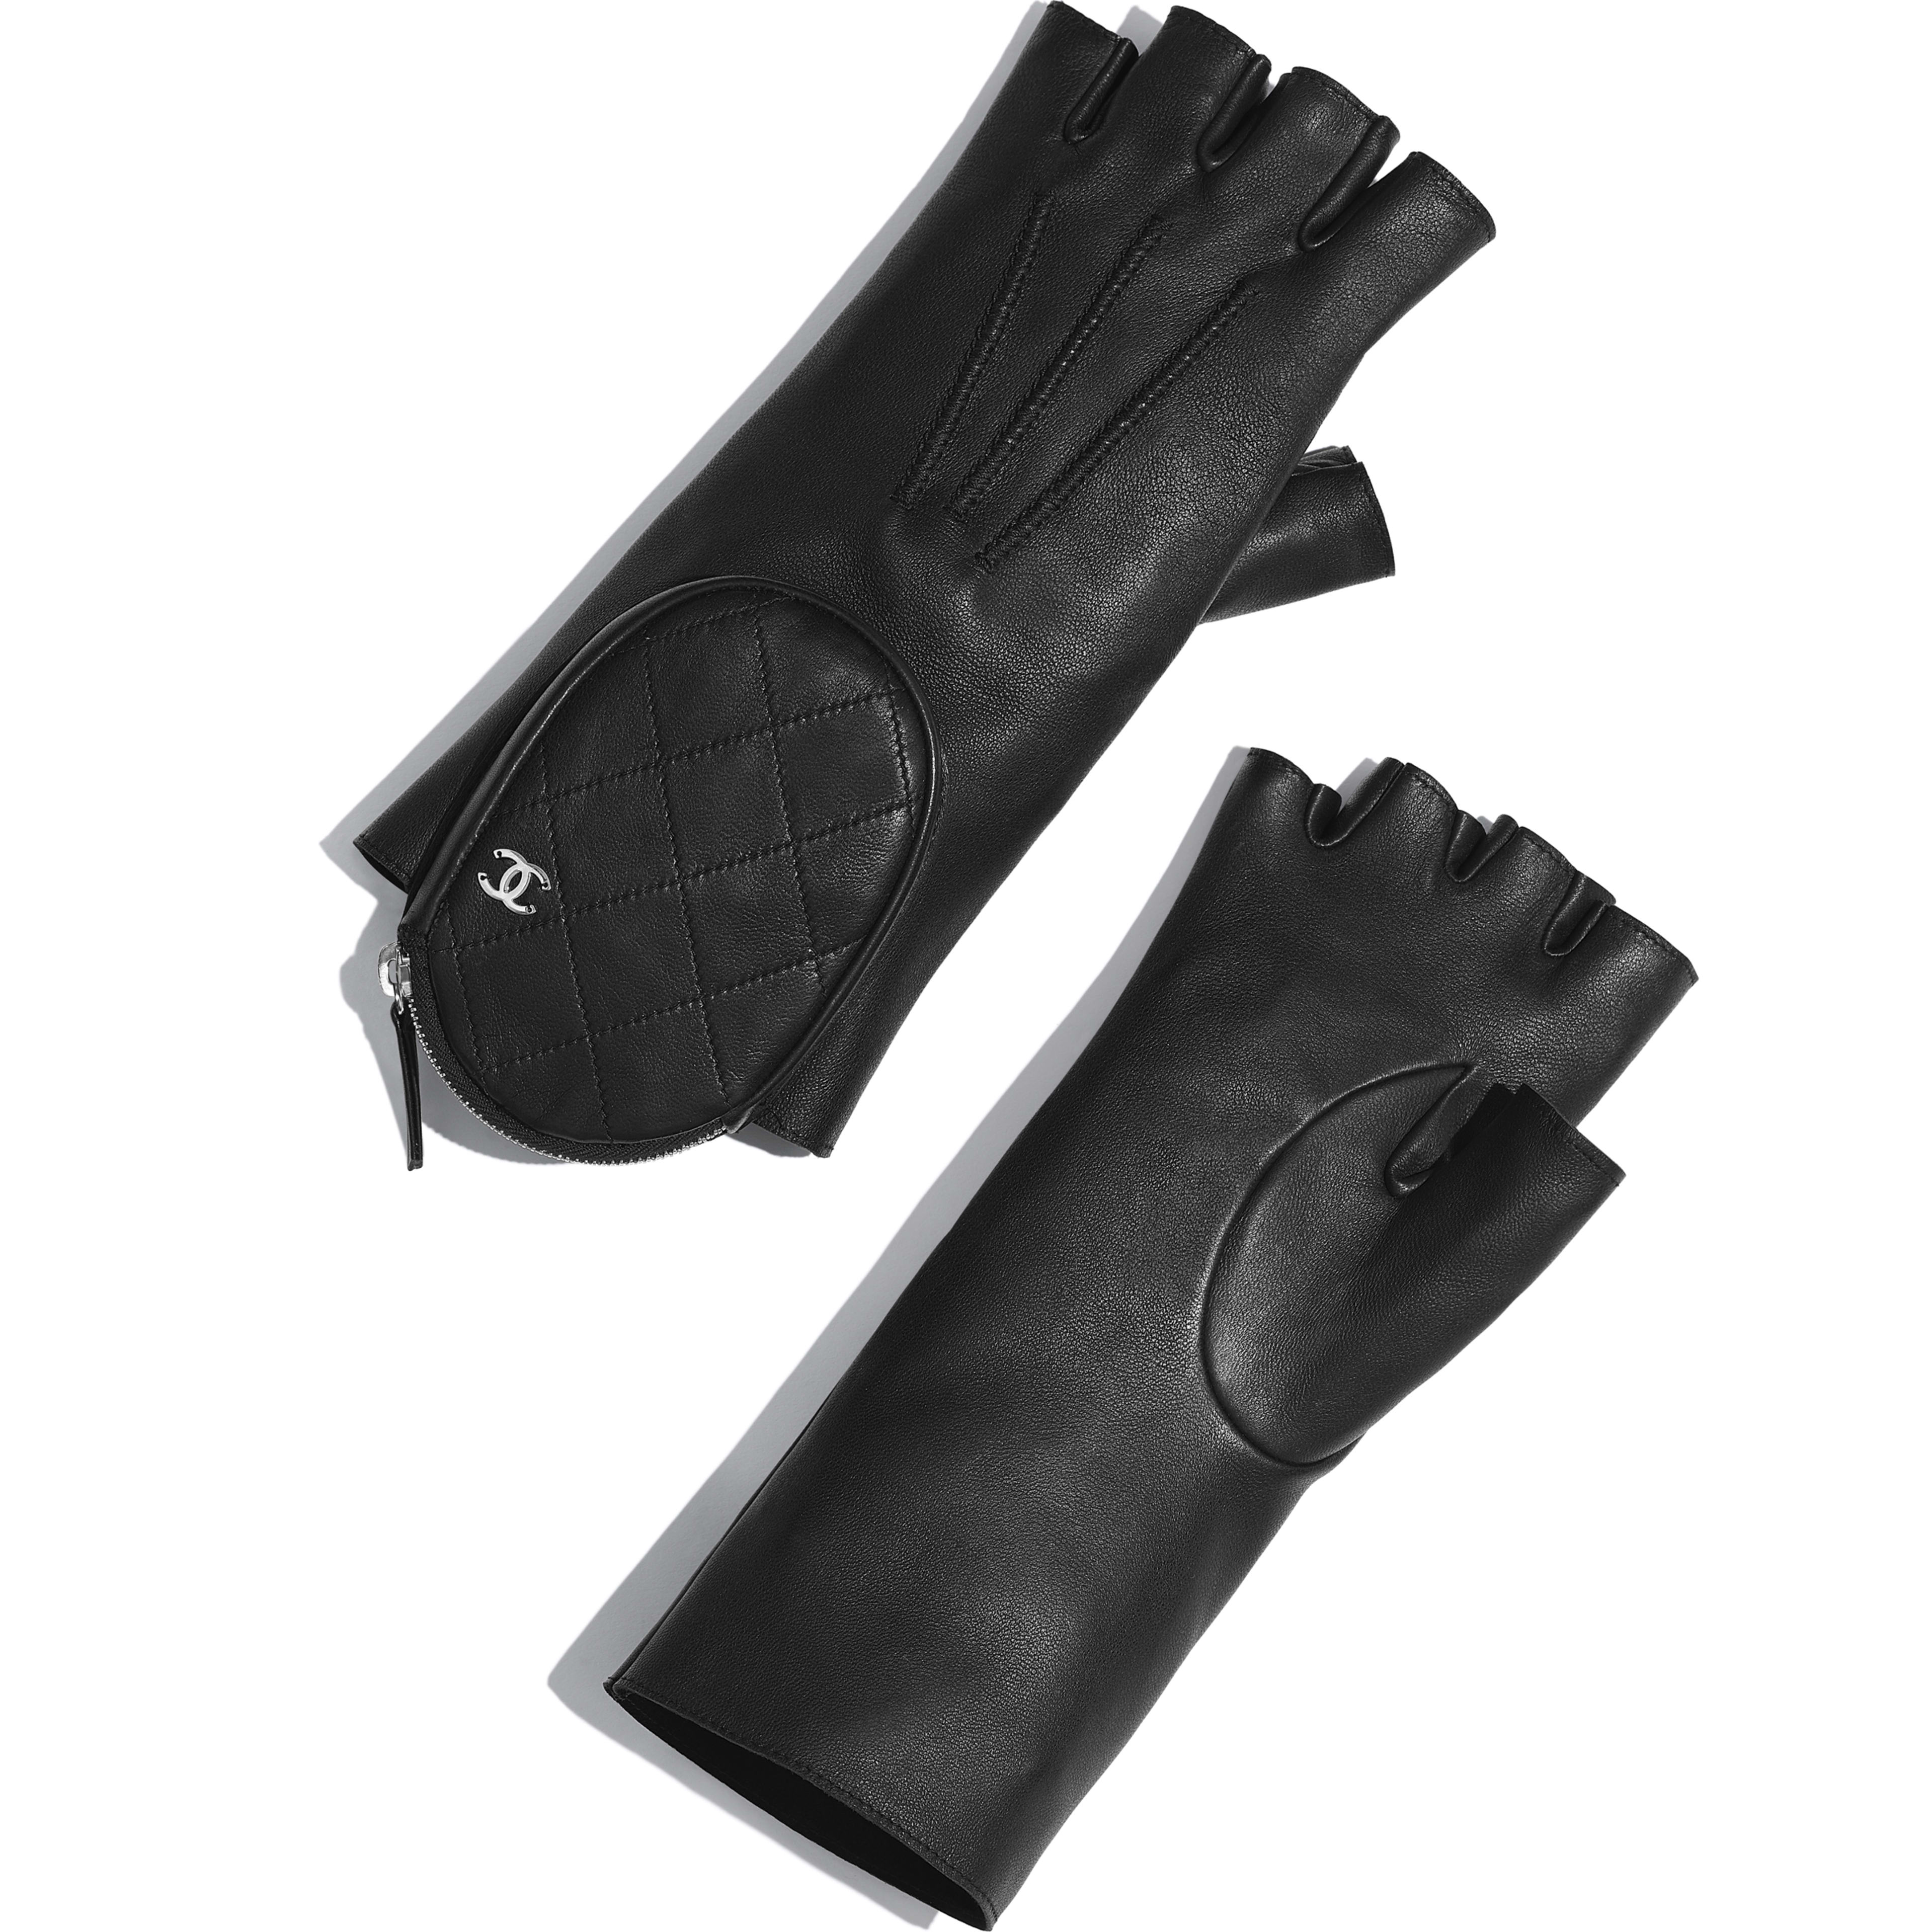 Gloves - Black - Lambskin & Silver-Tone Metal - Default view - see full sized version